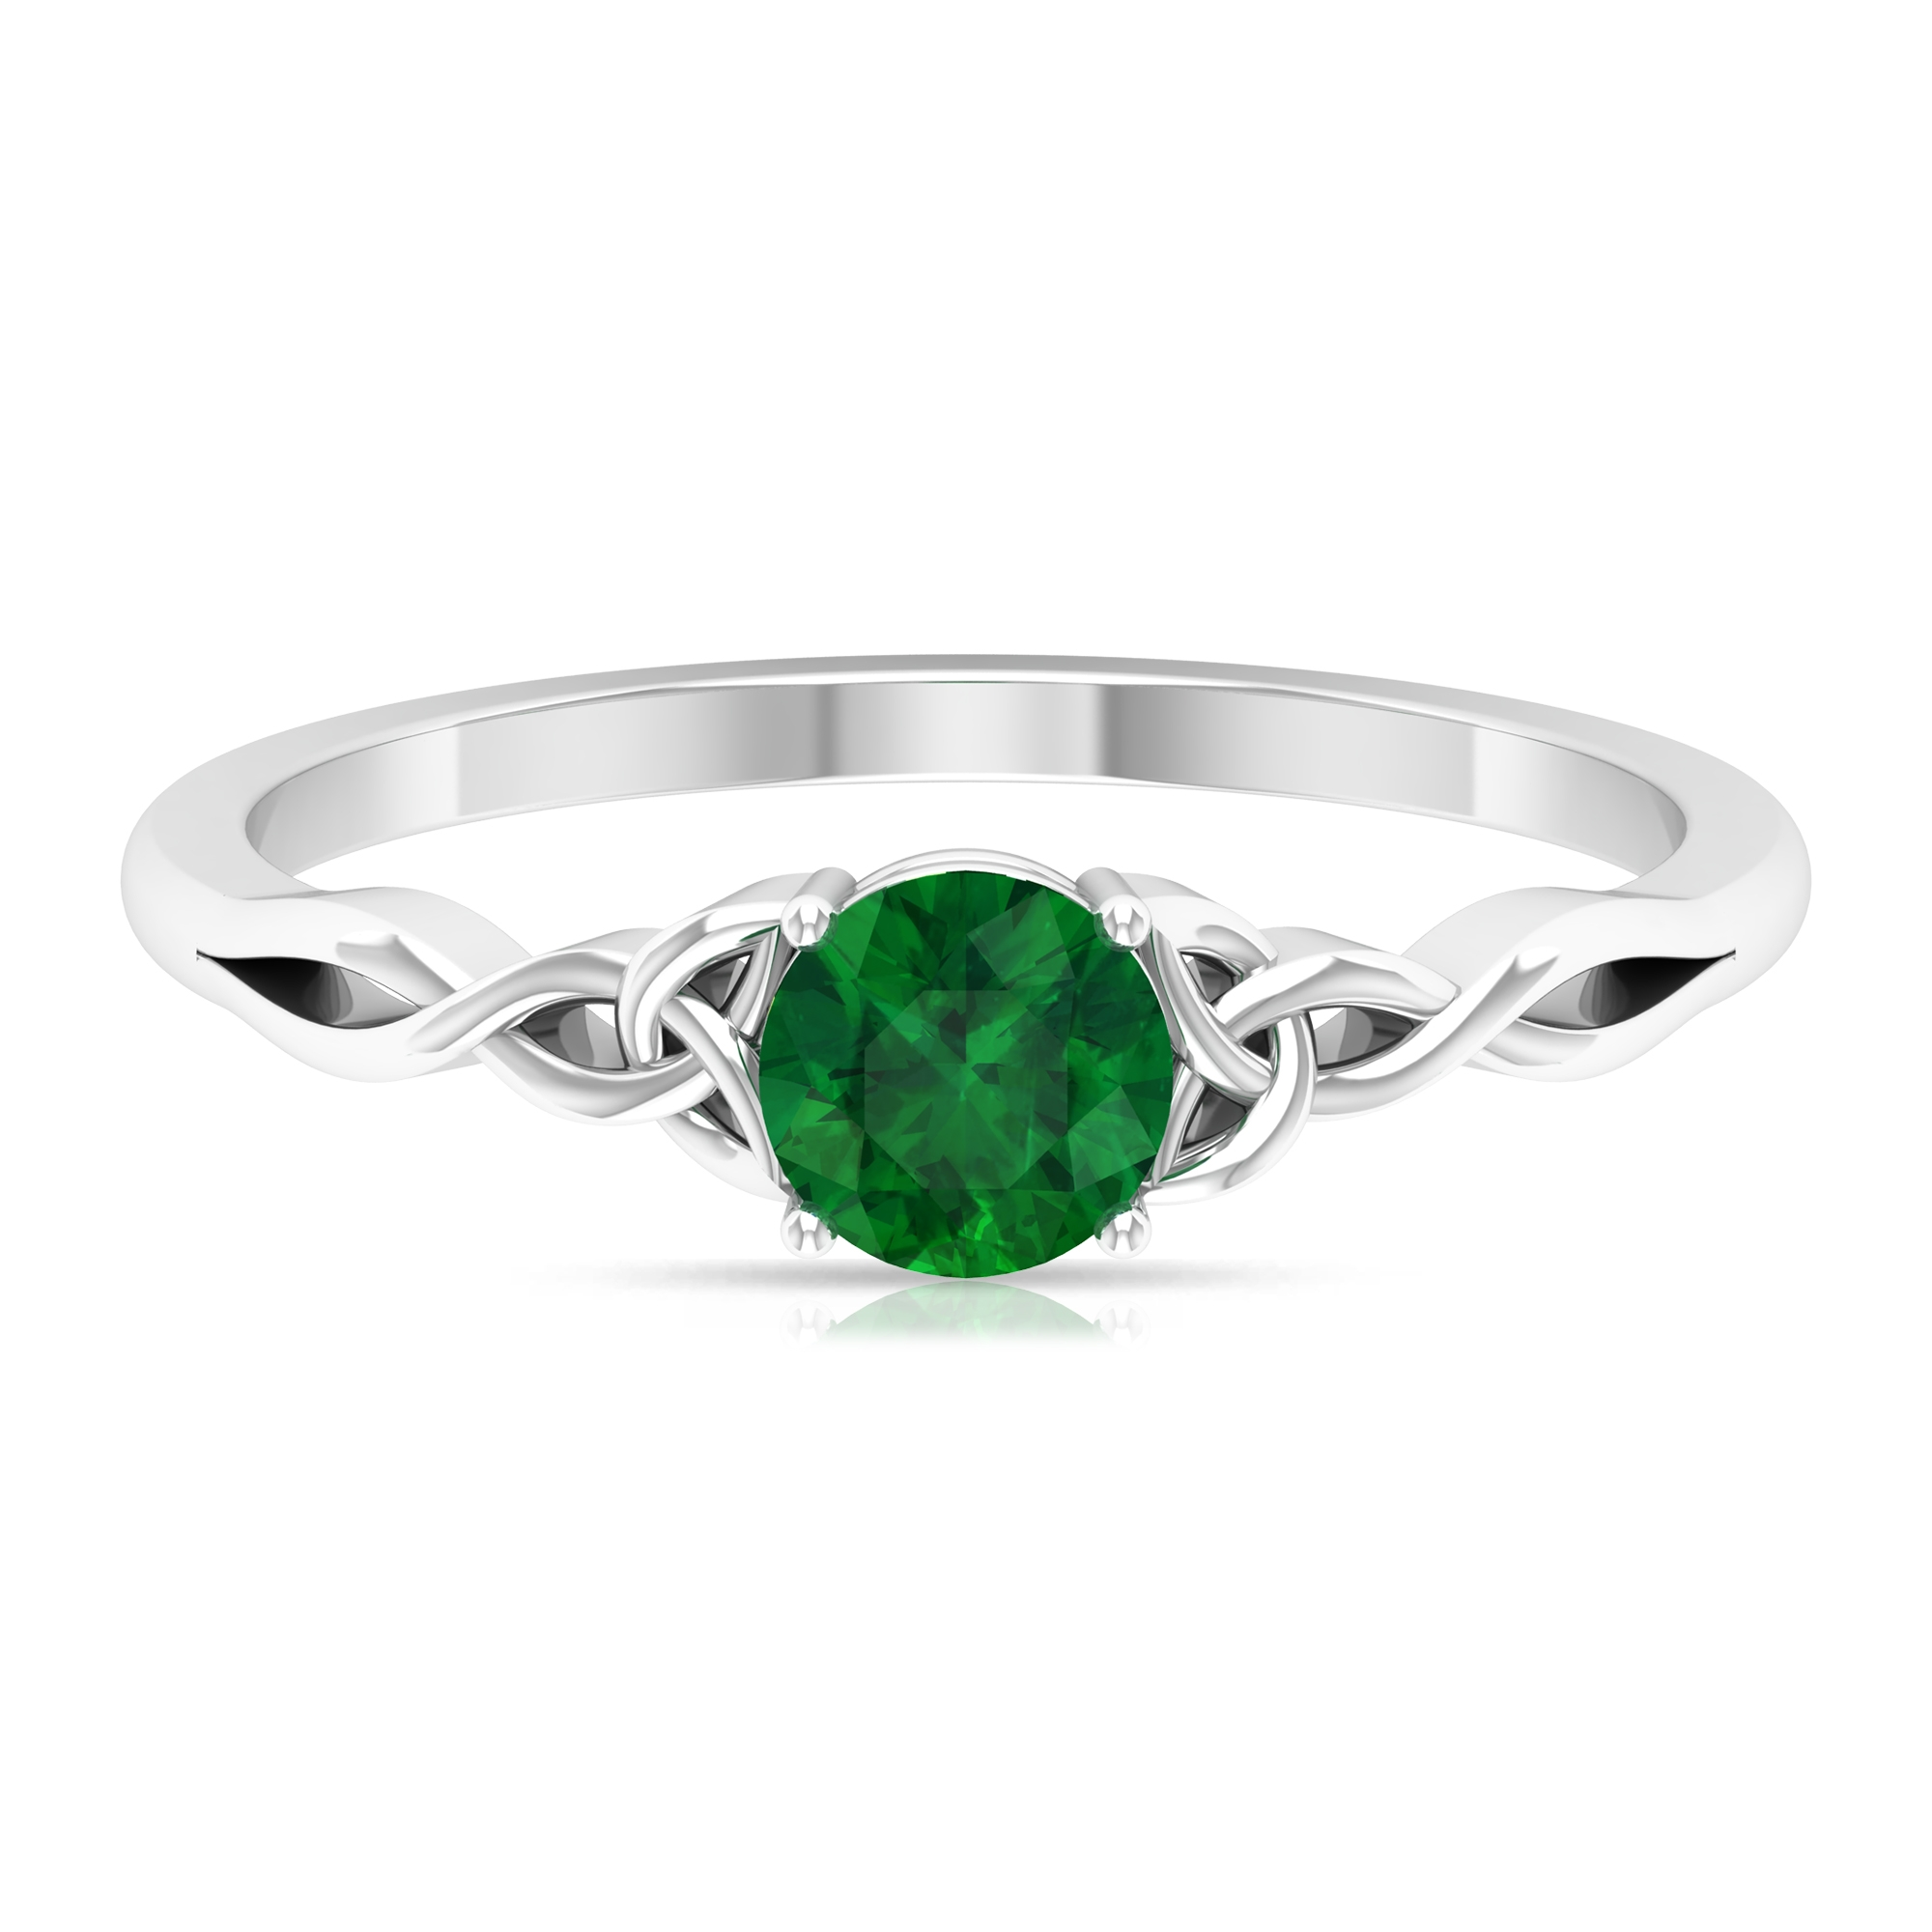 May Birthstone 5 MM Emerald Solitaire Ring in 4 Prong Setting with Celtic Pattern